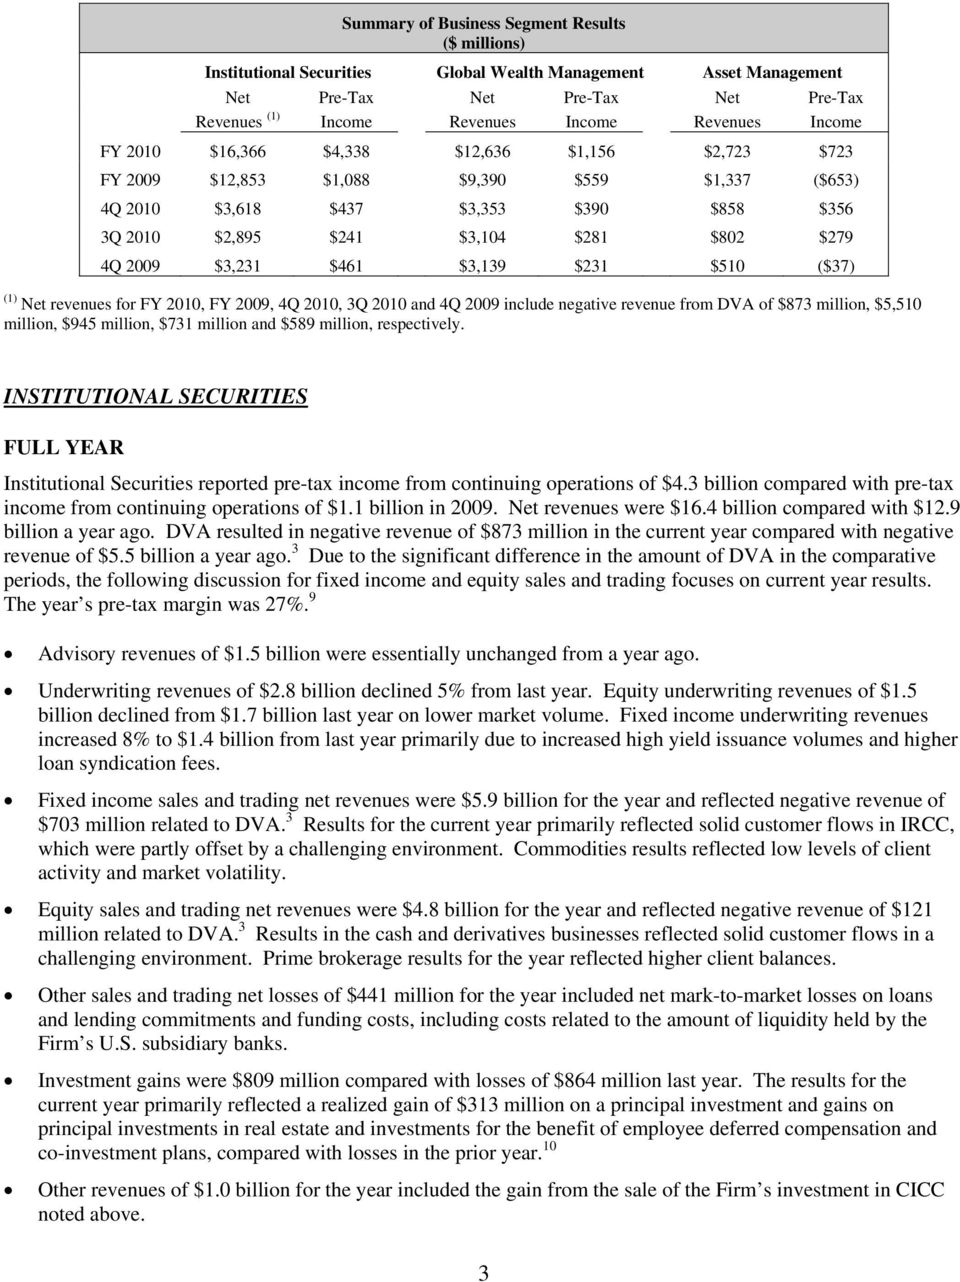 $3,231 $461 $3,139 $231 $510 ($37) (1) Net revenues for FY 2010, FY 2009, 4Q 2010, 3Q 2010 and 4Q 2009 include negative revenue from DVA of $873 million, $5,510 million, $945 million, $731 million